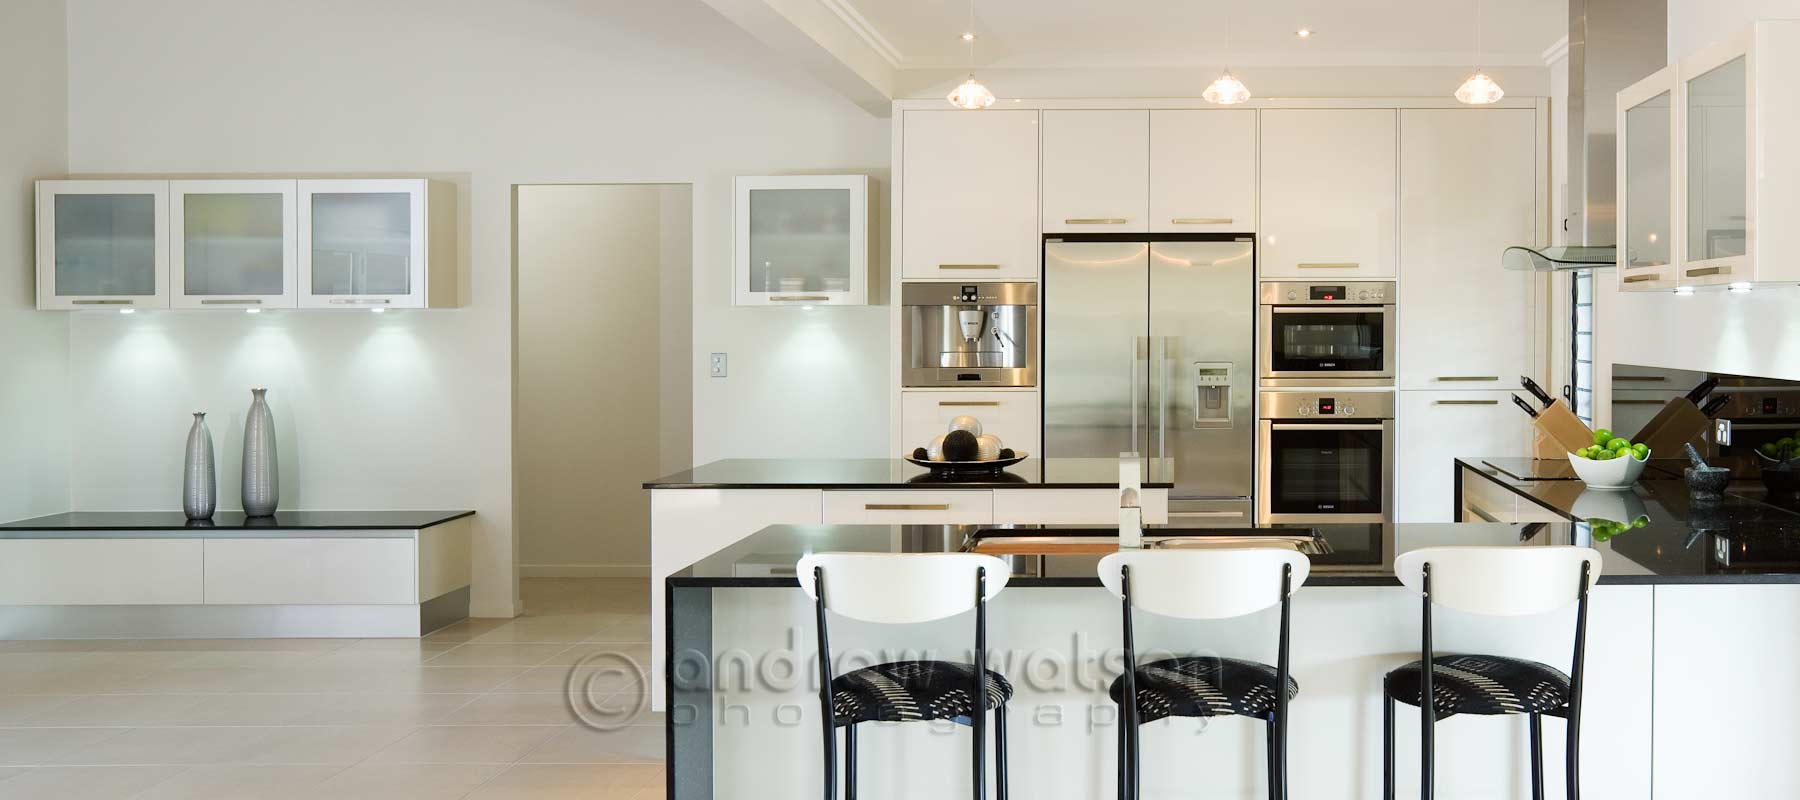 Interior photography - New kitchen installation